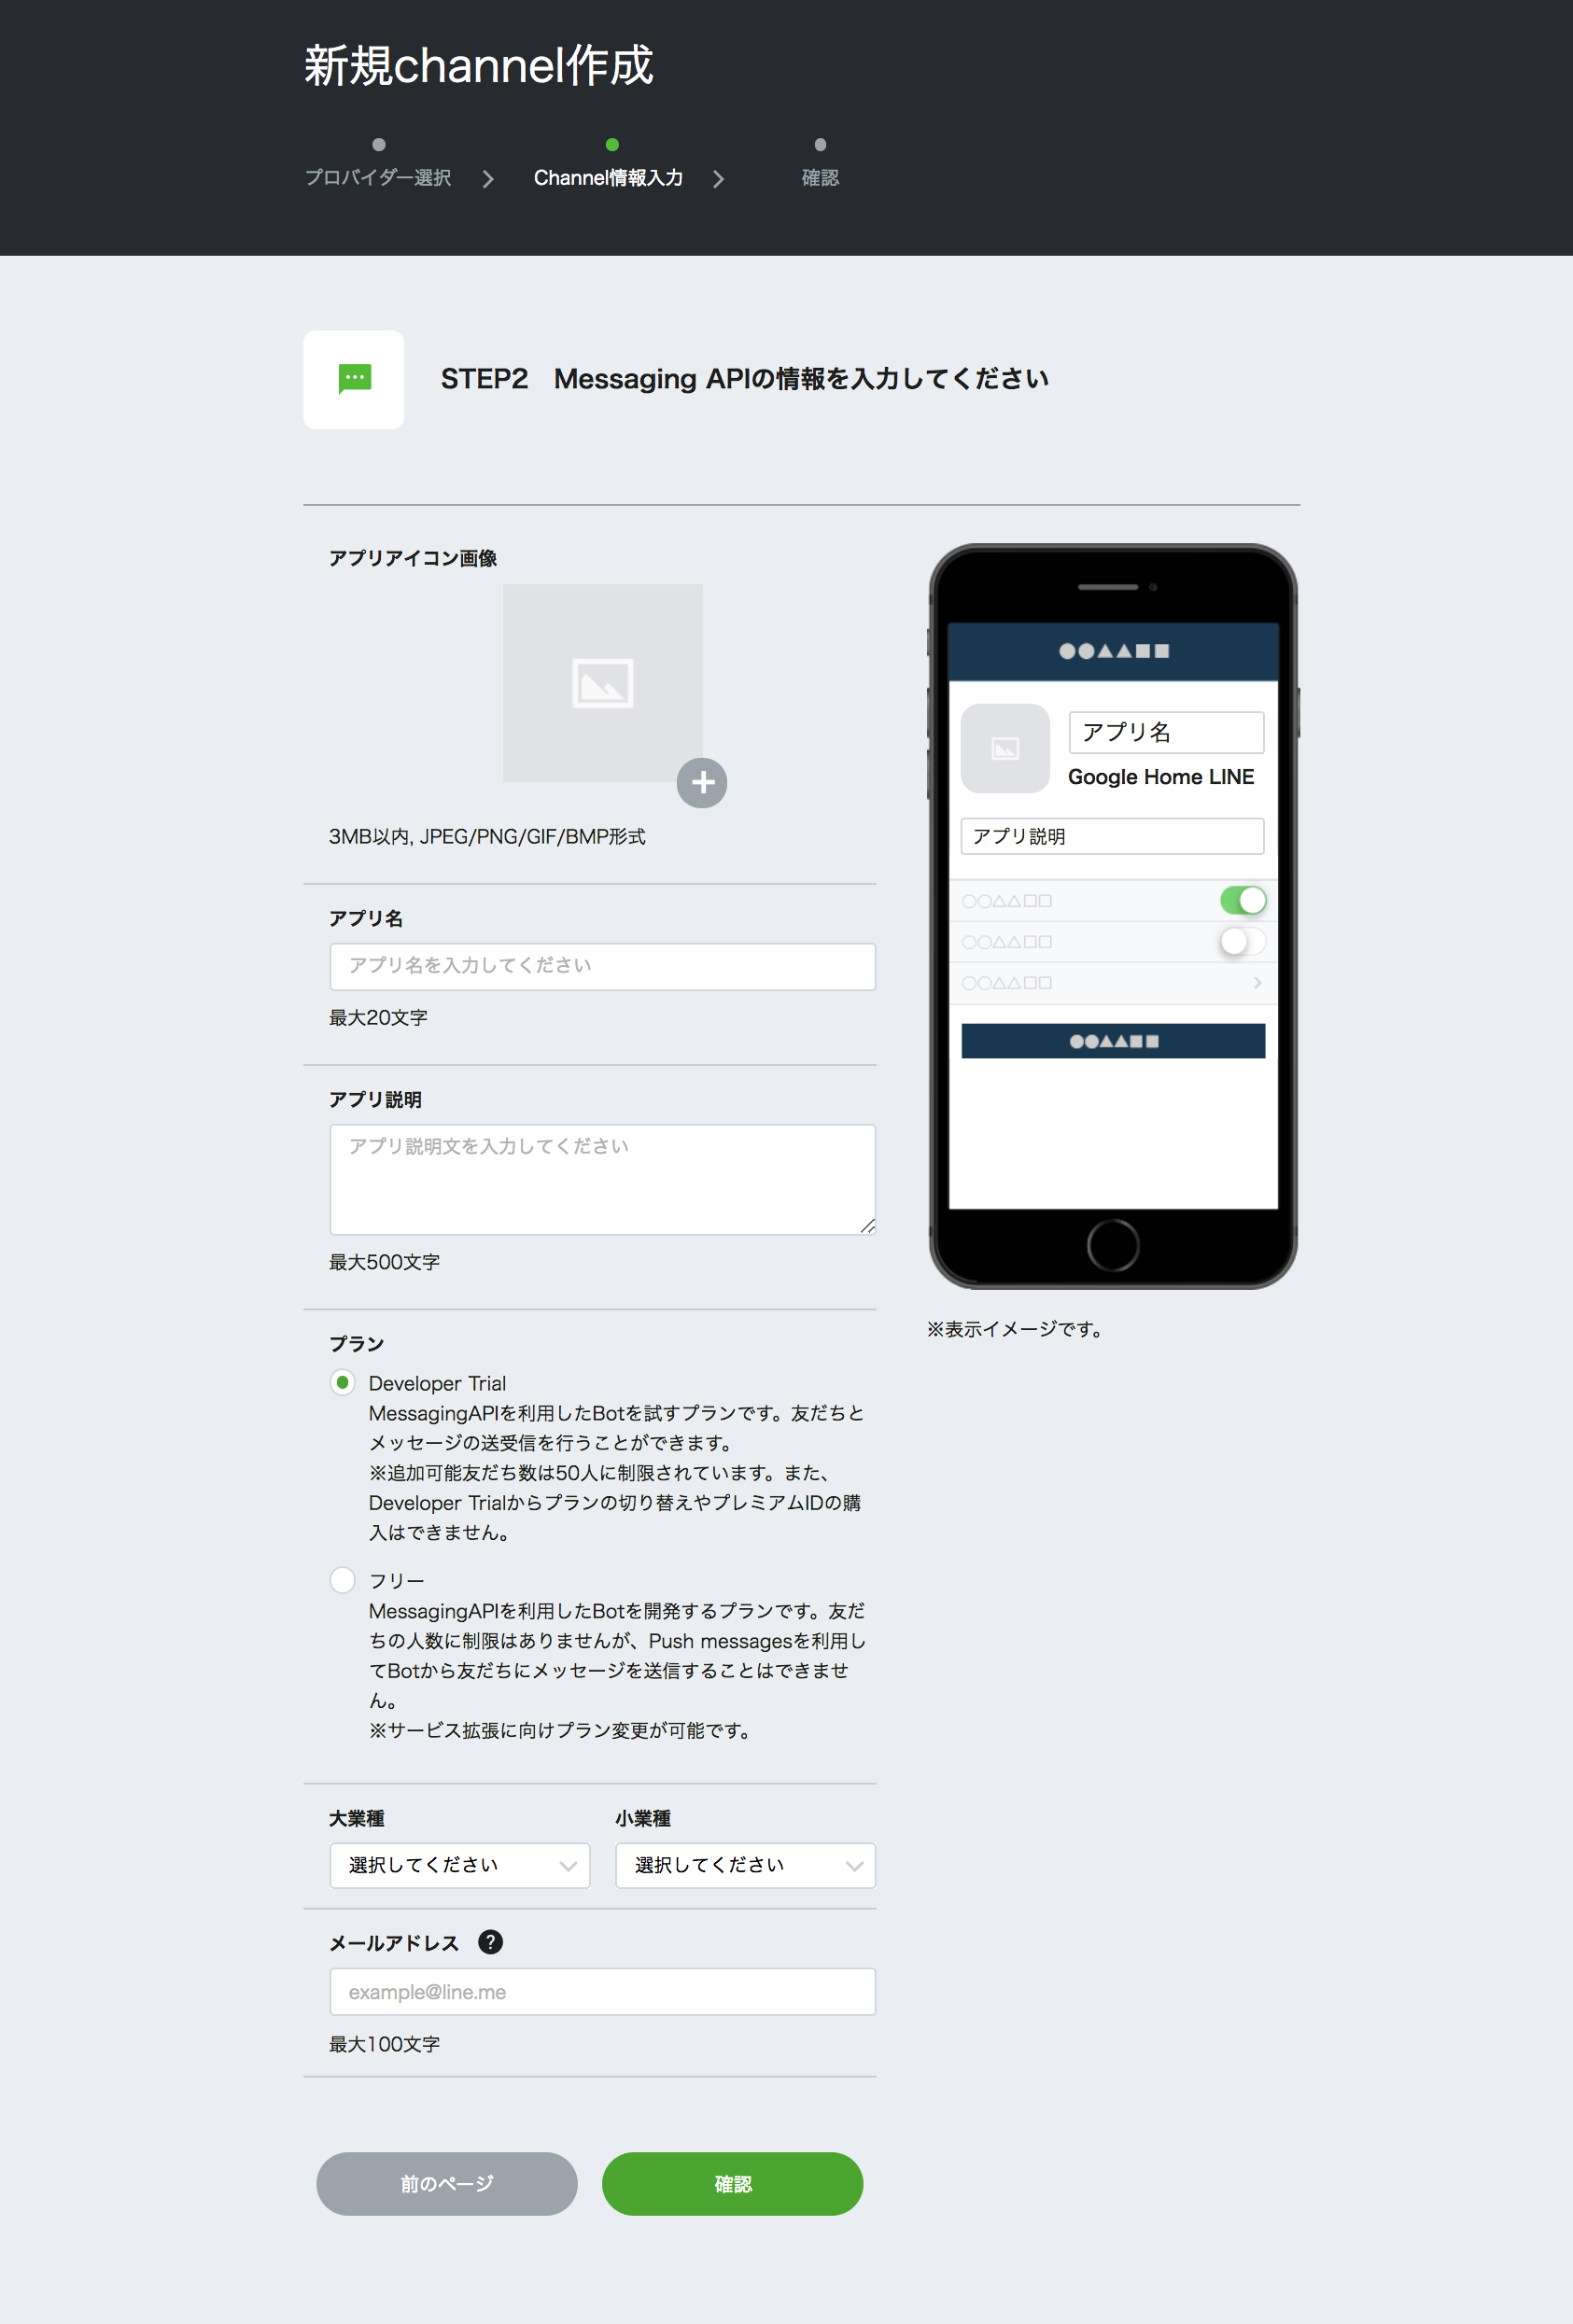 screencapture-developers-line-me-console-register-messaging-api-channel-1510998371989.png